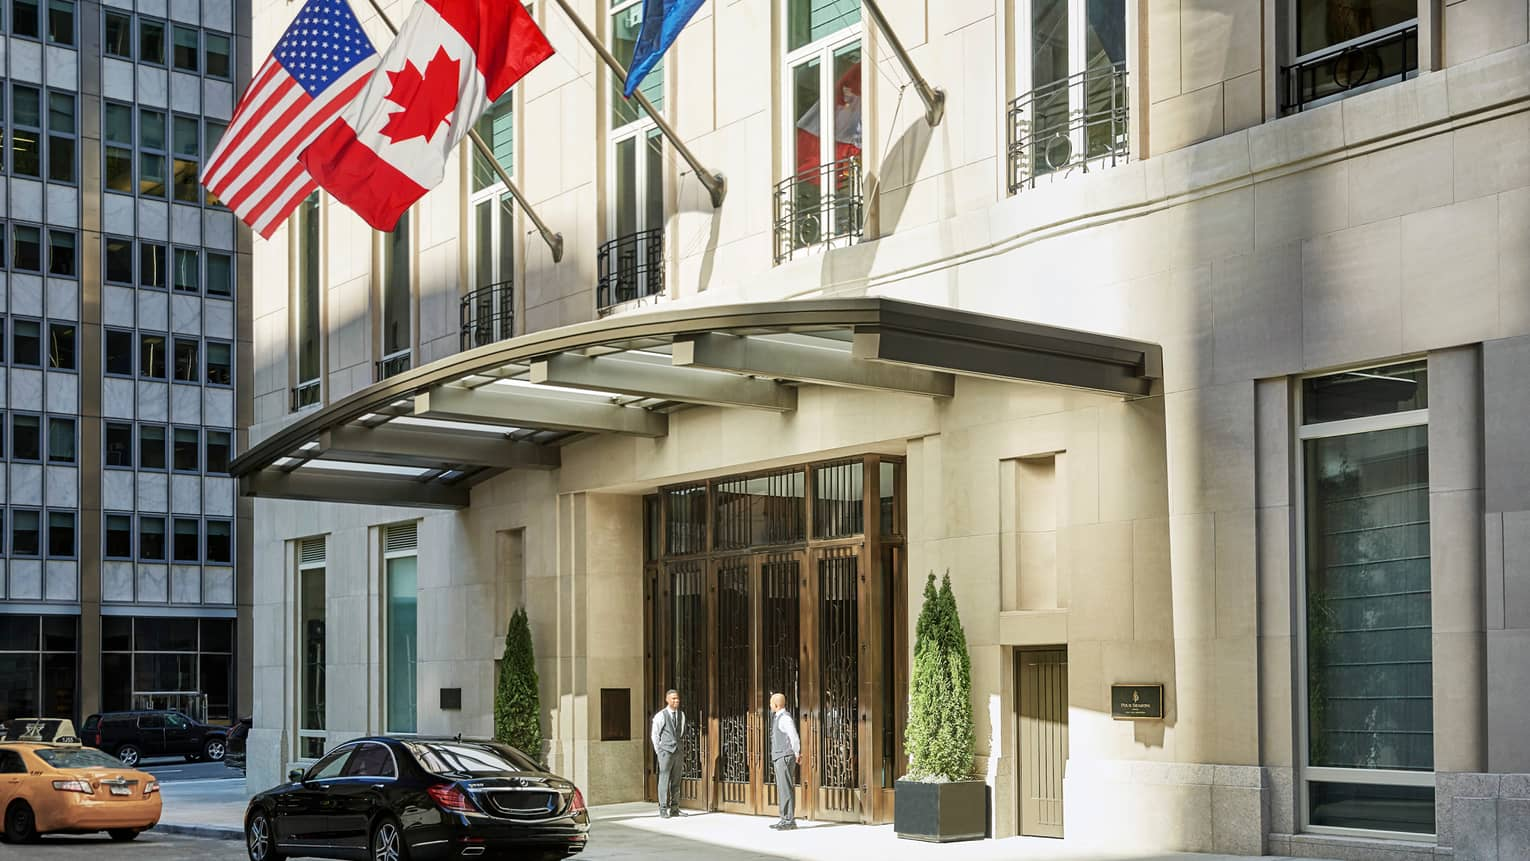 American and Canadian flags fly over Four Seasons Hotel New York Downtown entrance, door staff